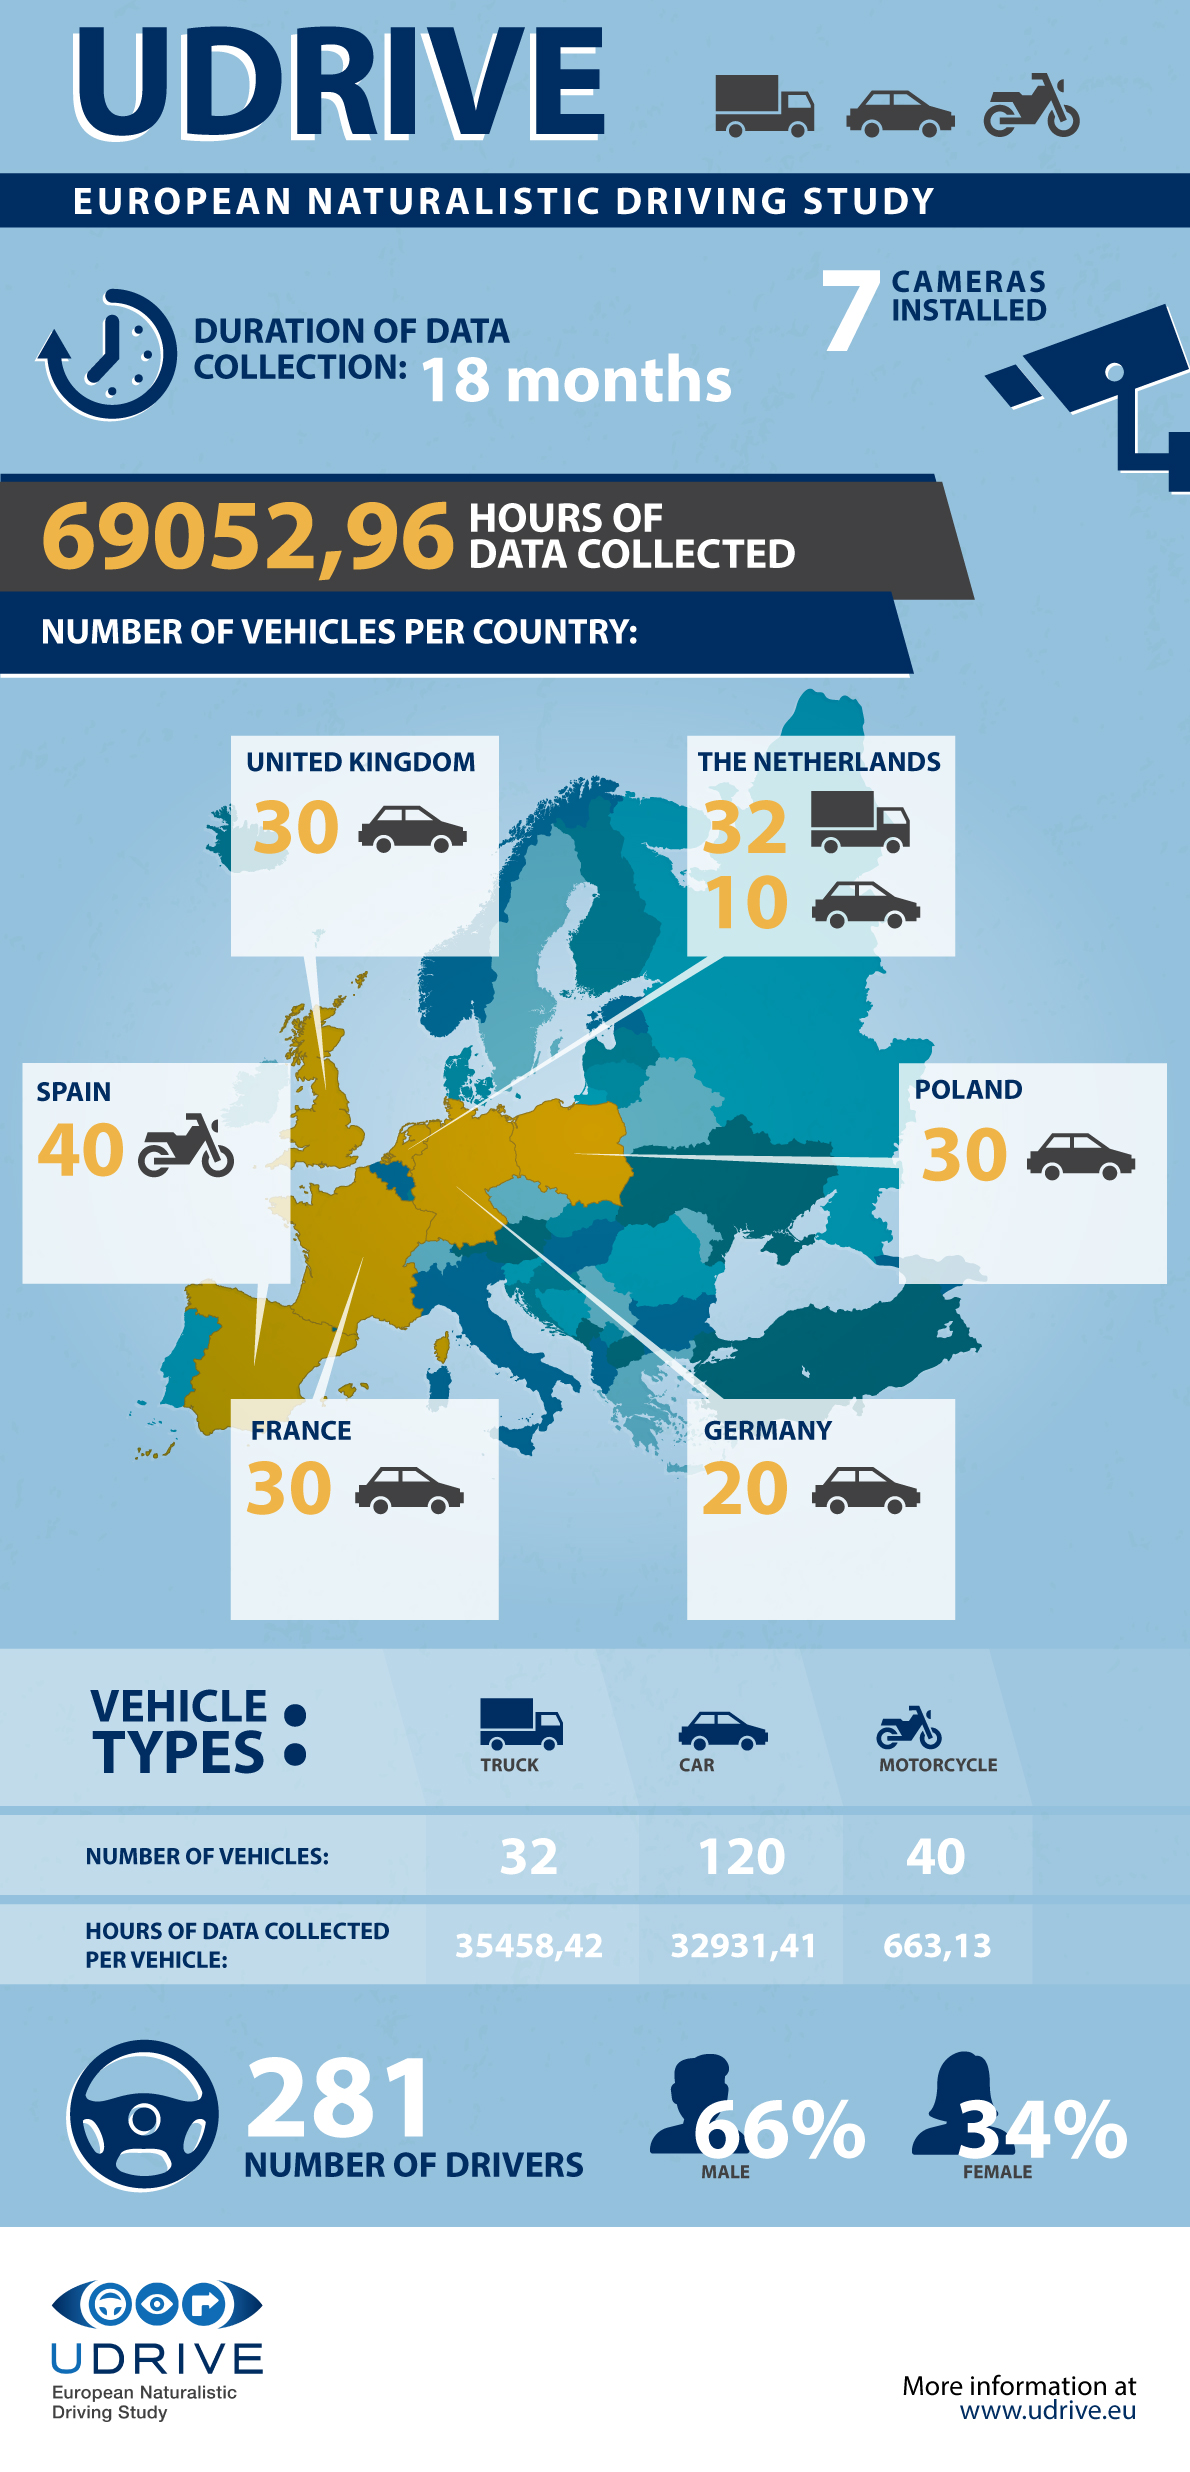 Check out the new UDRIVE Infographic